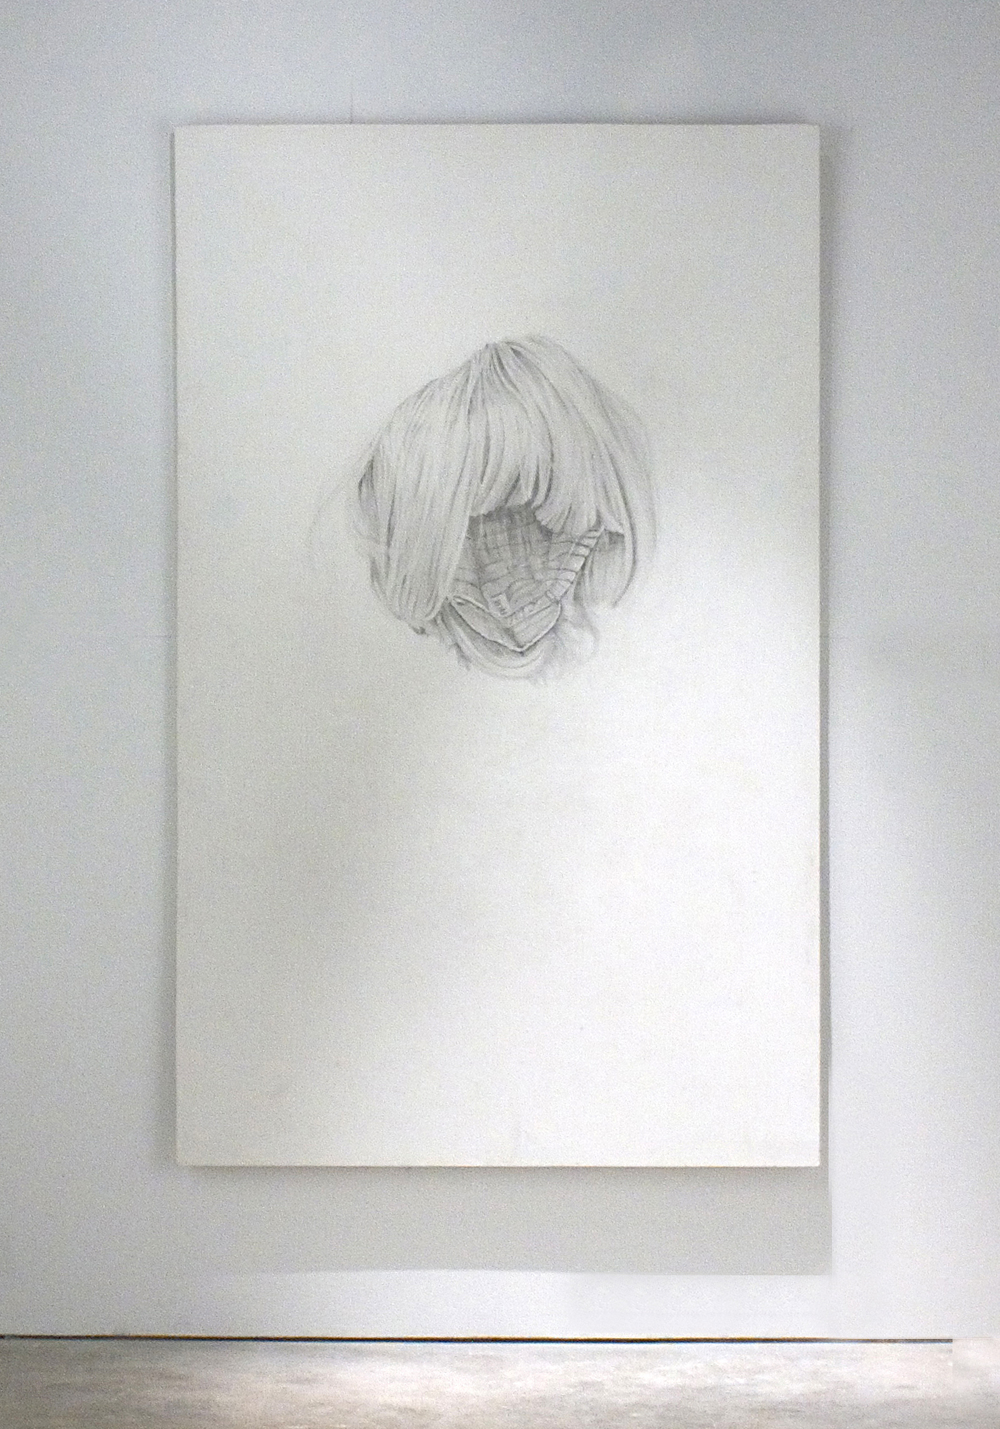 "'Empty Wig',  120 x 150 cm   Pencil and silver point on gesso board                                0     false             18 pt     18 pt     0     0         false     false     false                                                     /* Style Definitions */ table.MsoNormalTable 	{mso-style-name:""Table Normal""; 	mso-tstyle-rowband-size:0; 	mso-tstyle-colband-size:0; 	mso-style-noshow:yes; 	mso-style-parent:""""; 	mso-padding-alt:0cm 5.4pt 0cm 5.4pt; 	mso-para-margin:0cm; 	mso-para-margin-bottom:.0001pt; 	mso-pagination:widow-orphan; 	font-size:10.0pt; 	font-family:""Times New Roman""; 	mso-ascii-font-family:Cambria; 	mso-ascii-theme-font:minor-latin; 	mso-hansi-font-family:Cambria; 	mso-hansi-theme-font:minor-latin; 	mso-ansi-language:EN-US;}                                             0     false             18 pt     18 pt     0     0         false     false     false                                                     /* Style Definitions */ table.MsoNormalTable 	{mso-style-name:""Table Normal""; 	mso-tstyle-rowband-size:0; 	mso-tstyle-colband-size:0; 	mso-style-noshow:yes; 	mso-style-parent:""""; 	mso-padding-alt:0cm 5.4pt 0cm 5.4pt; 	mso-para-margin:0cm; 	mso-para-margin-bottom:.0001pt; 	mso-pagination:widow-orphan; 	font-size:10.0pt; 	font-family:""Times New Roman""; 	mso-ascii-font-family:Cambria; 	mso-ascii-theme-font:minor-latin; 	mso-hansi-font-family:Cambria; 	mso-hansi-theme-font:minor-latin; 	mso-ansi-language:EN-US;}                                             0     false             18 pt     18 pt     0     0         false     false     false                                                     /* Style Definitions */ table.MsoNormalTable 	{mso-style-name:""Table Normal""; 	mso-tstyle-rowband-size:0; 	mso-tstyle-colband-size:0; 	mso-style-noshow:yes; 	mso-style-parent:""""; 	mso-padding-alt:0cm 5.4pt 0cm 5.4pt; 	mso-para-margin:0cm; 	mso-para-margin-bottom:.0001pt; 	mso-pagination:widow-orphan; 	font-size:10.0pt; 	font-family:""Times New Roman""; 	mso-ascii-font-family:Cambria; 	mso-ascii-theme-font:minor-latin; 	mso-hansi-font-family:Cambria; 	mso-hansi-theme-font:minor-latin; 	mso-ansi-language:EN-US;}"